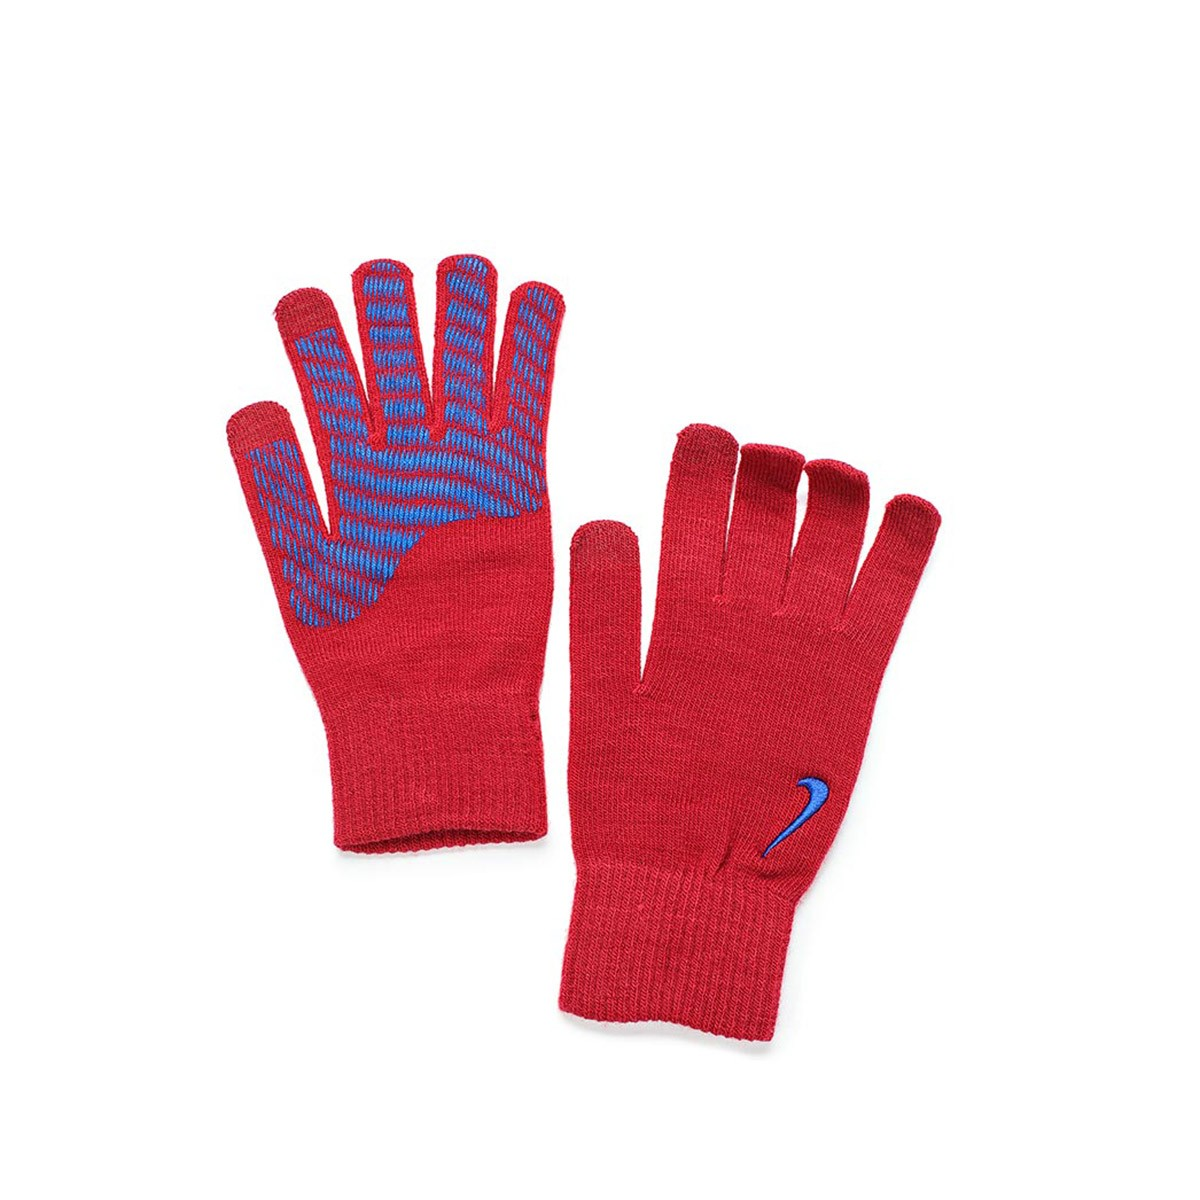 Nike Knitted Gloves Junior: JR NIKE Rukavice NIKE KNITTED TECH AND GRIP GLOVES S/M ST